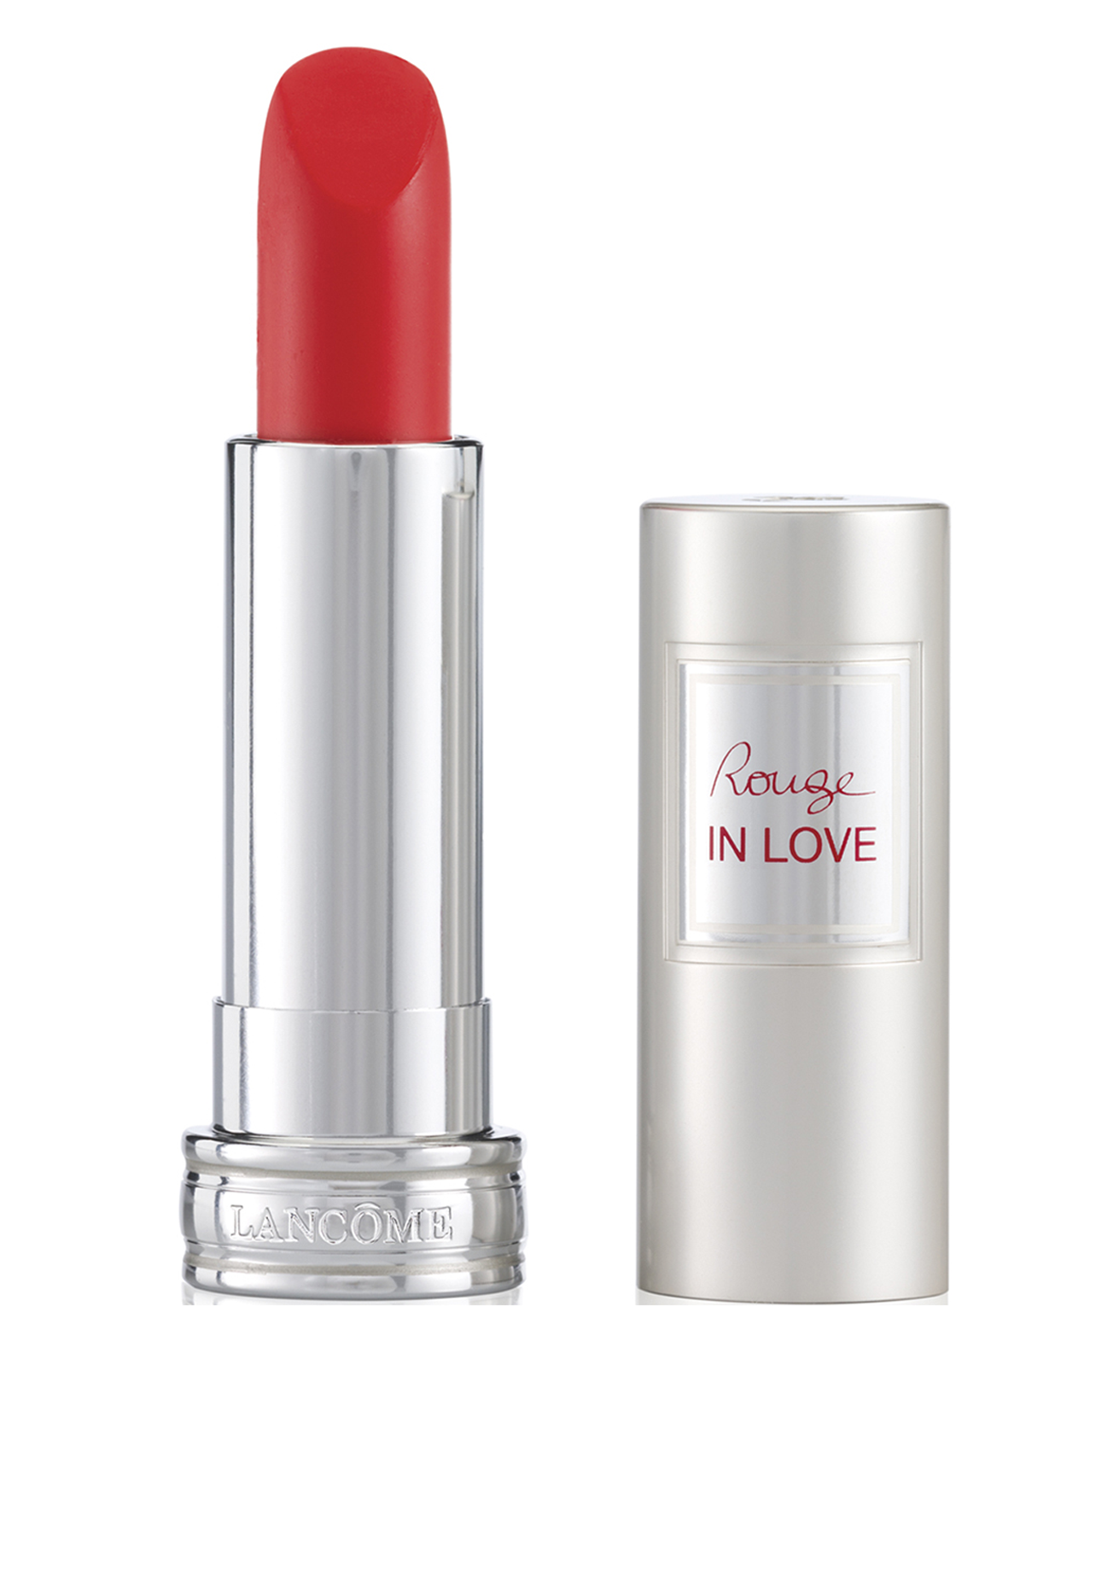 Lancome Rouge In Love Lip Stick, Crazy Tangerine 174B